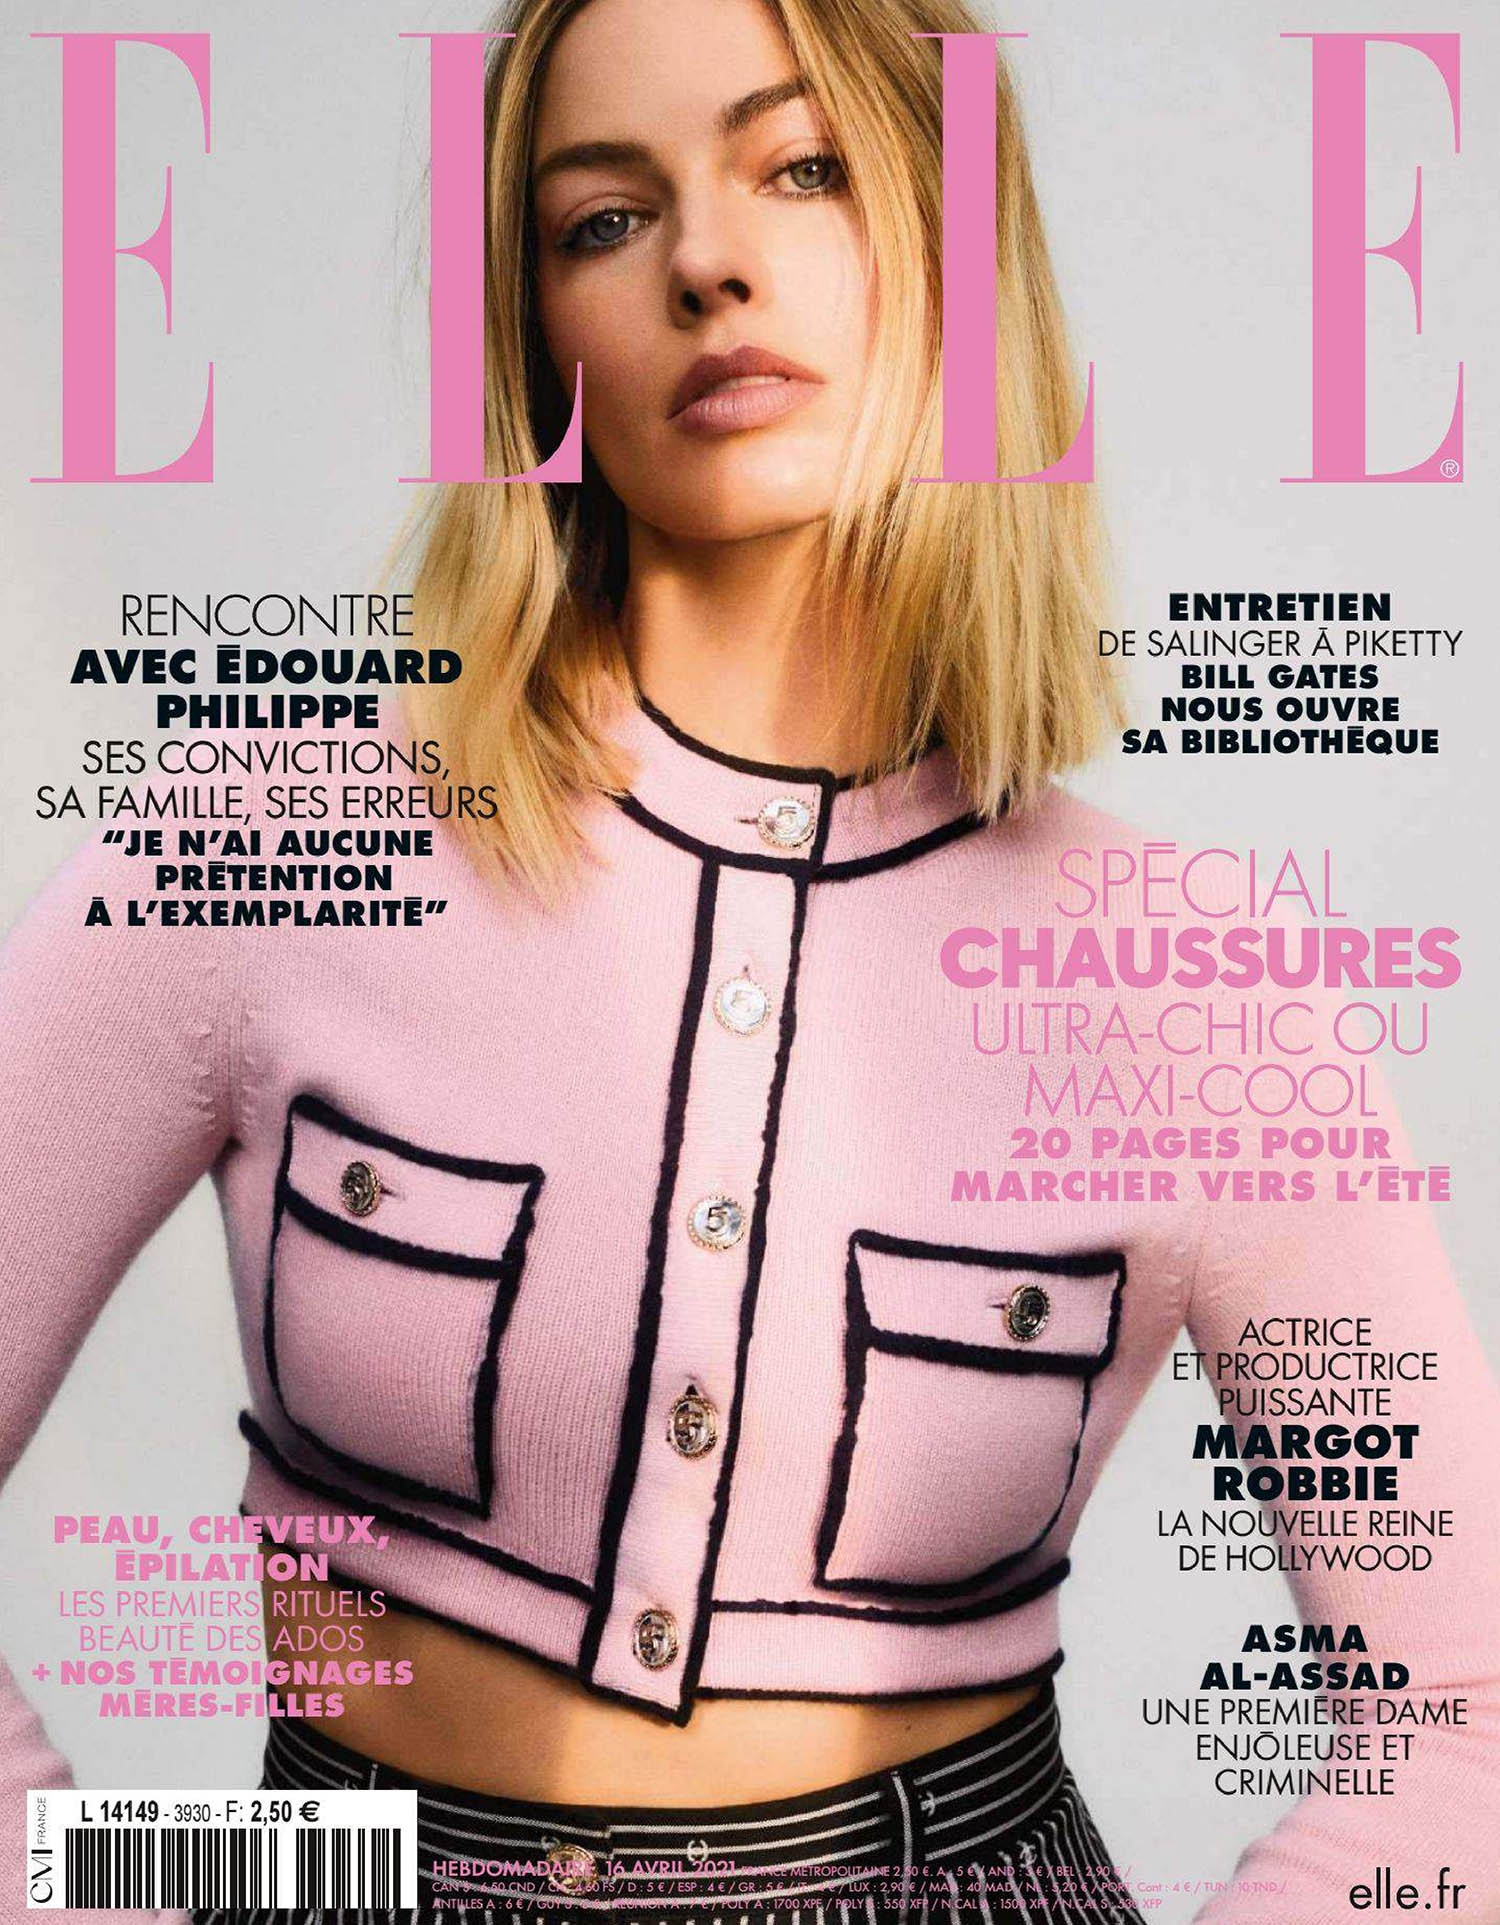 Margot Robbie covers Elle France April 16th, 2021 by Zoey Grossman